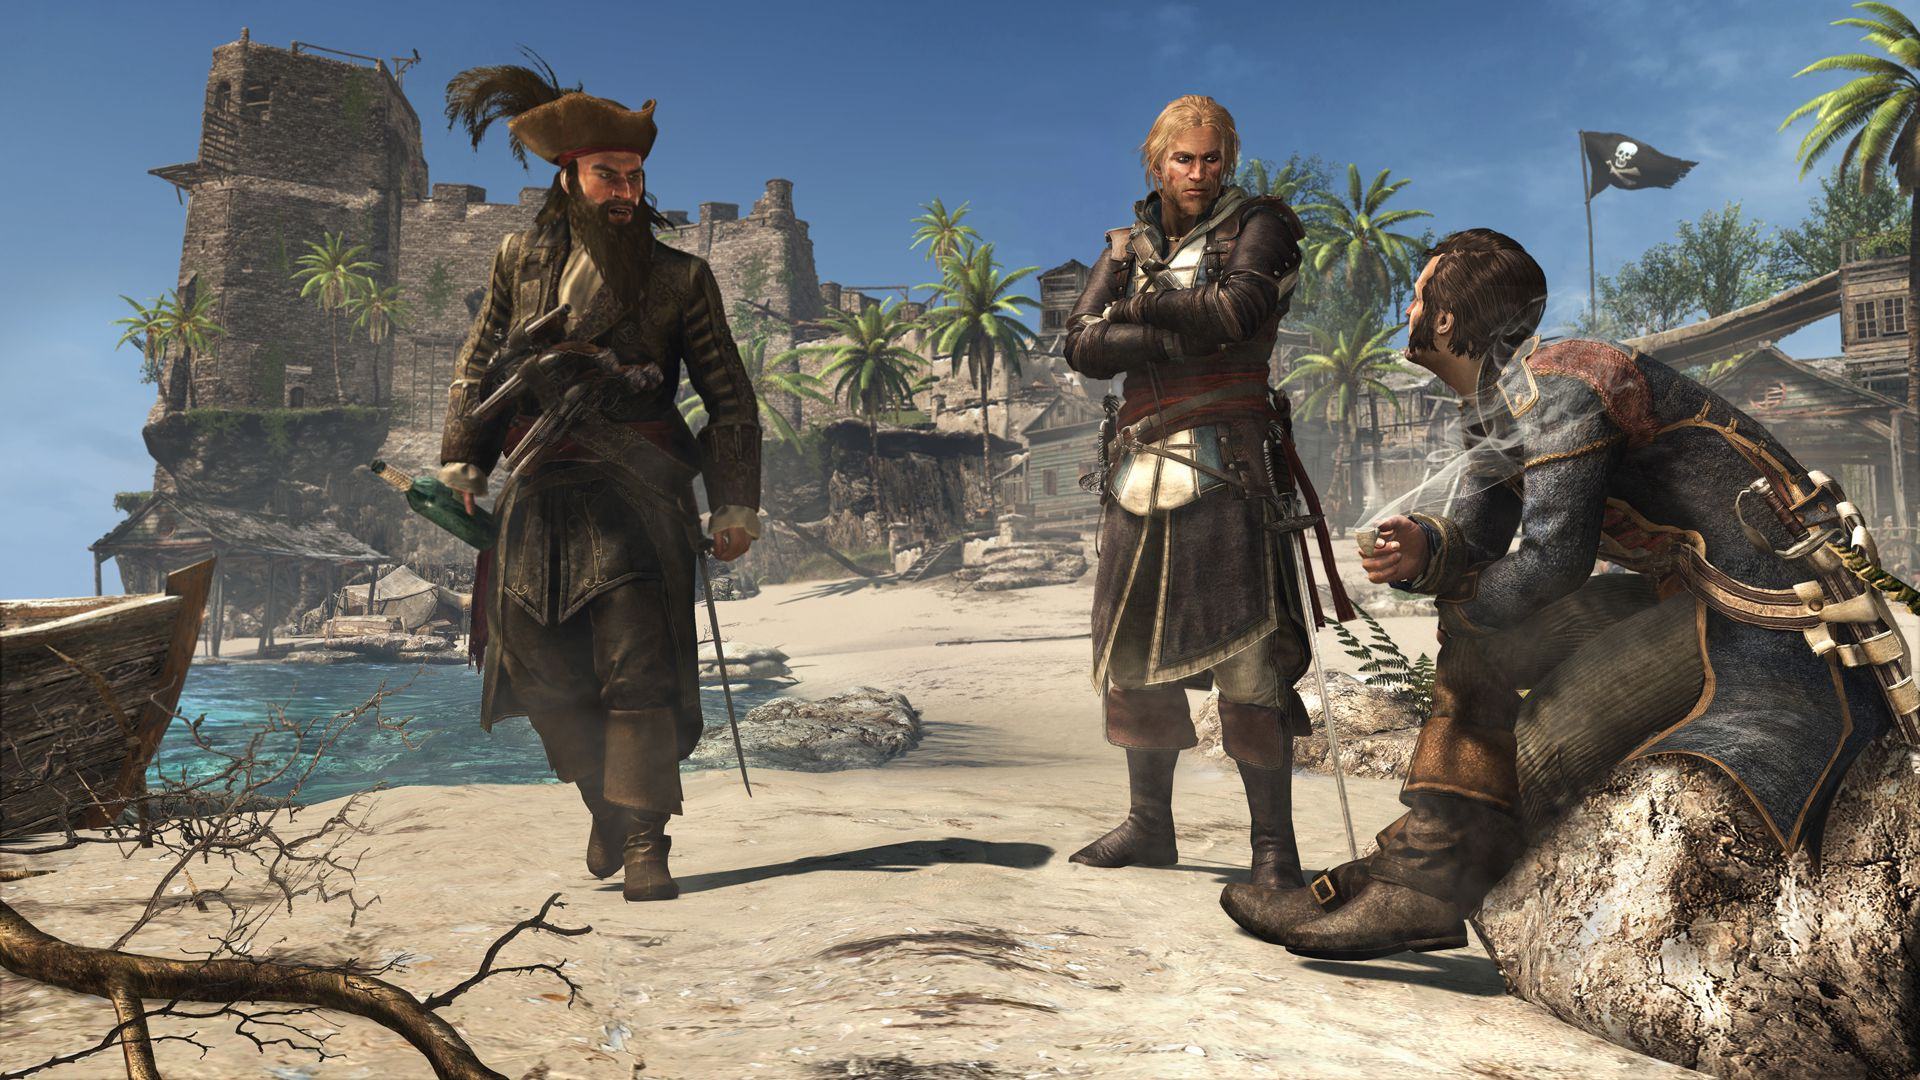 Assassin's Creed IV: Black Flag - Wikipedia